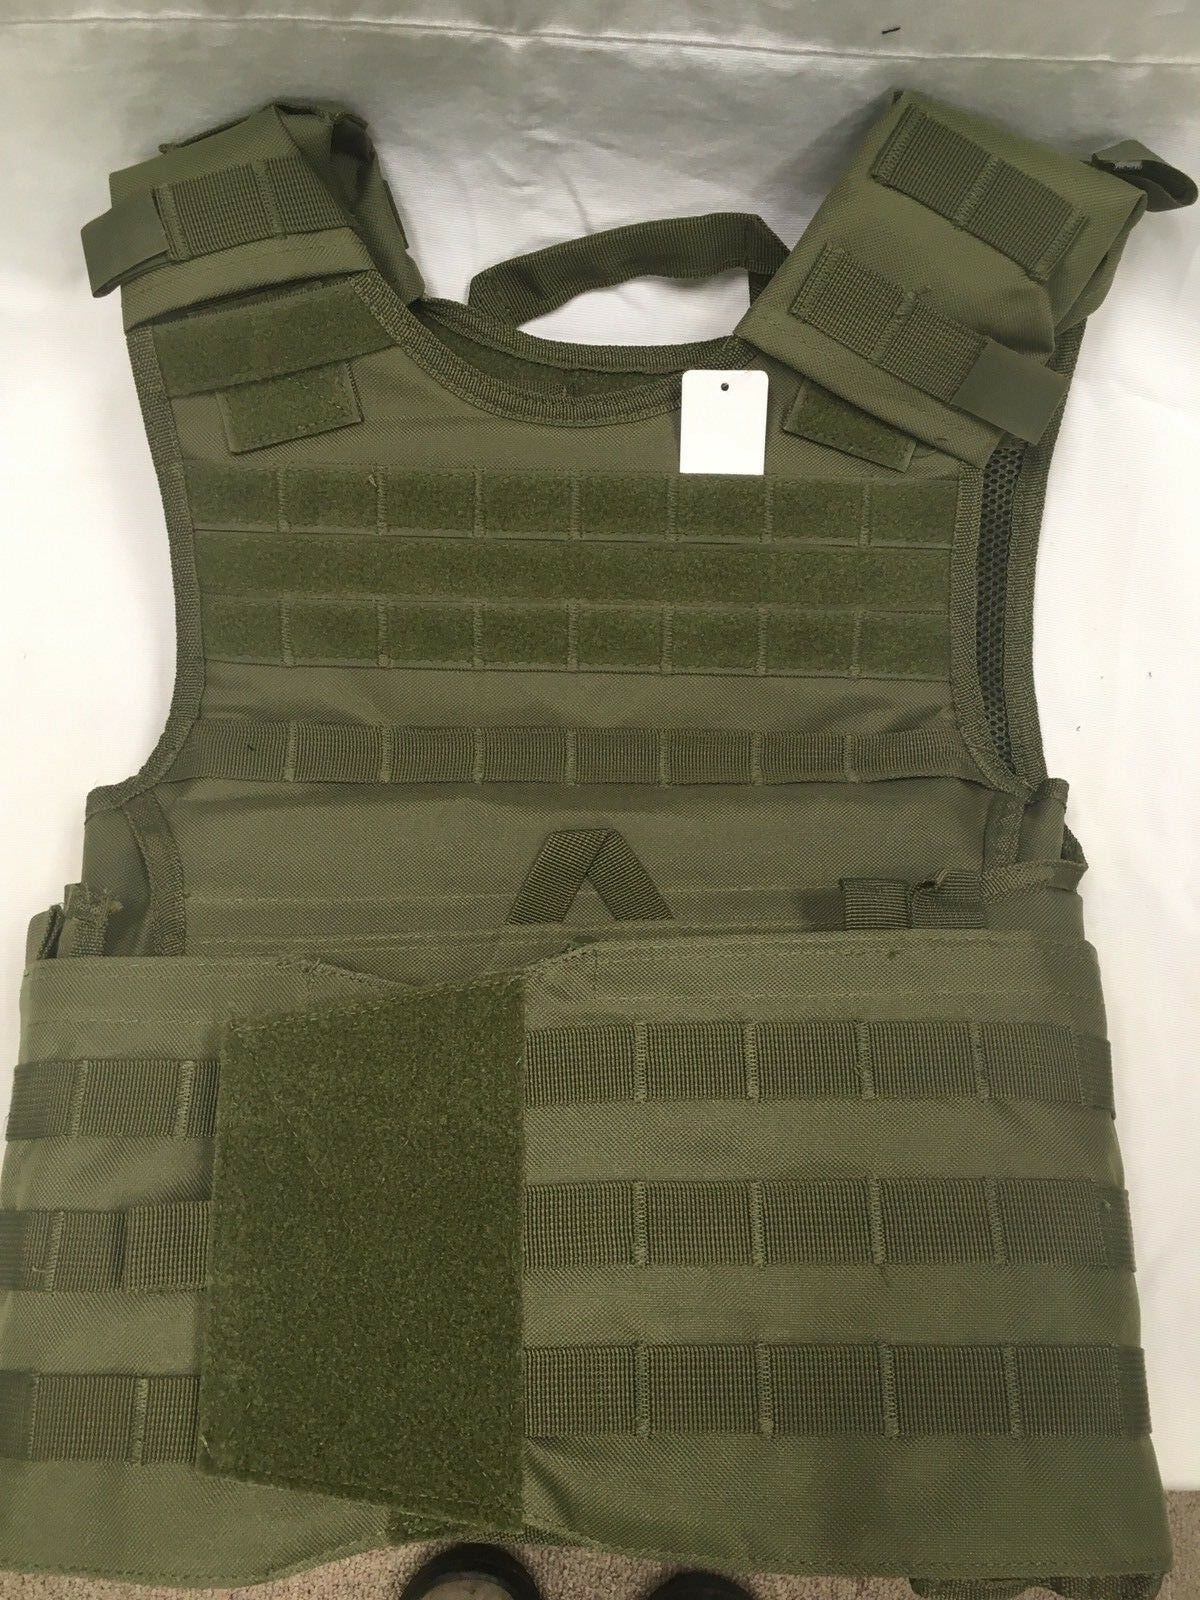 NEW Condor  Style Tactical Outer Carrier in OD Green  save on clearance